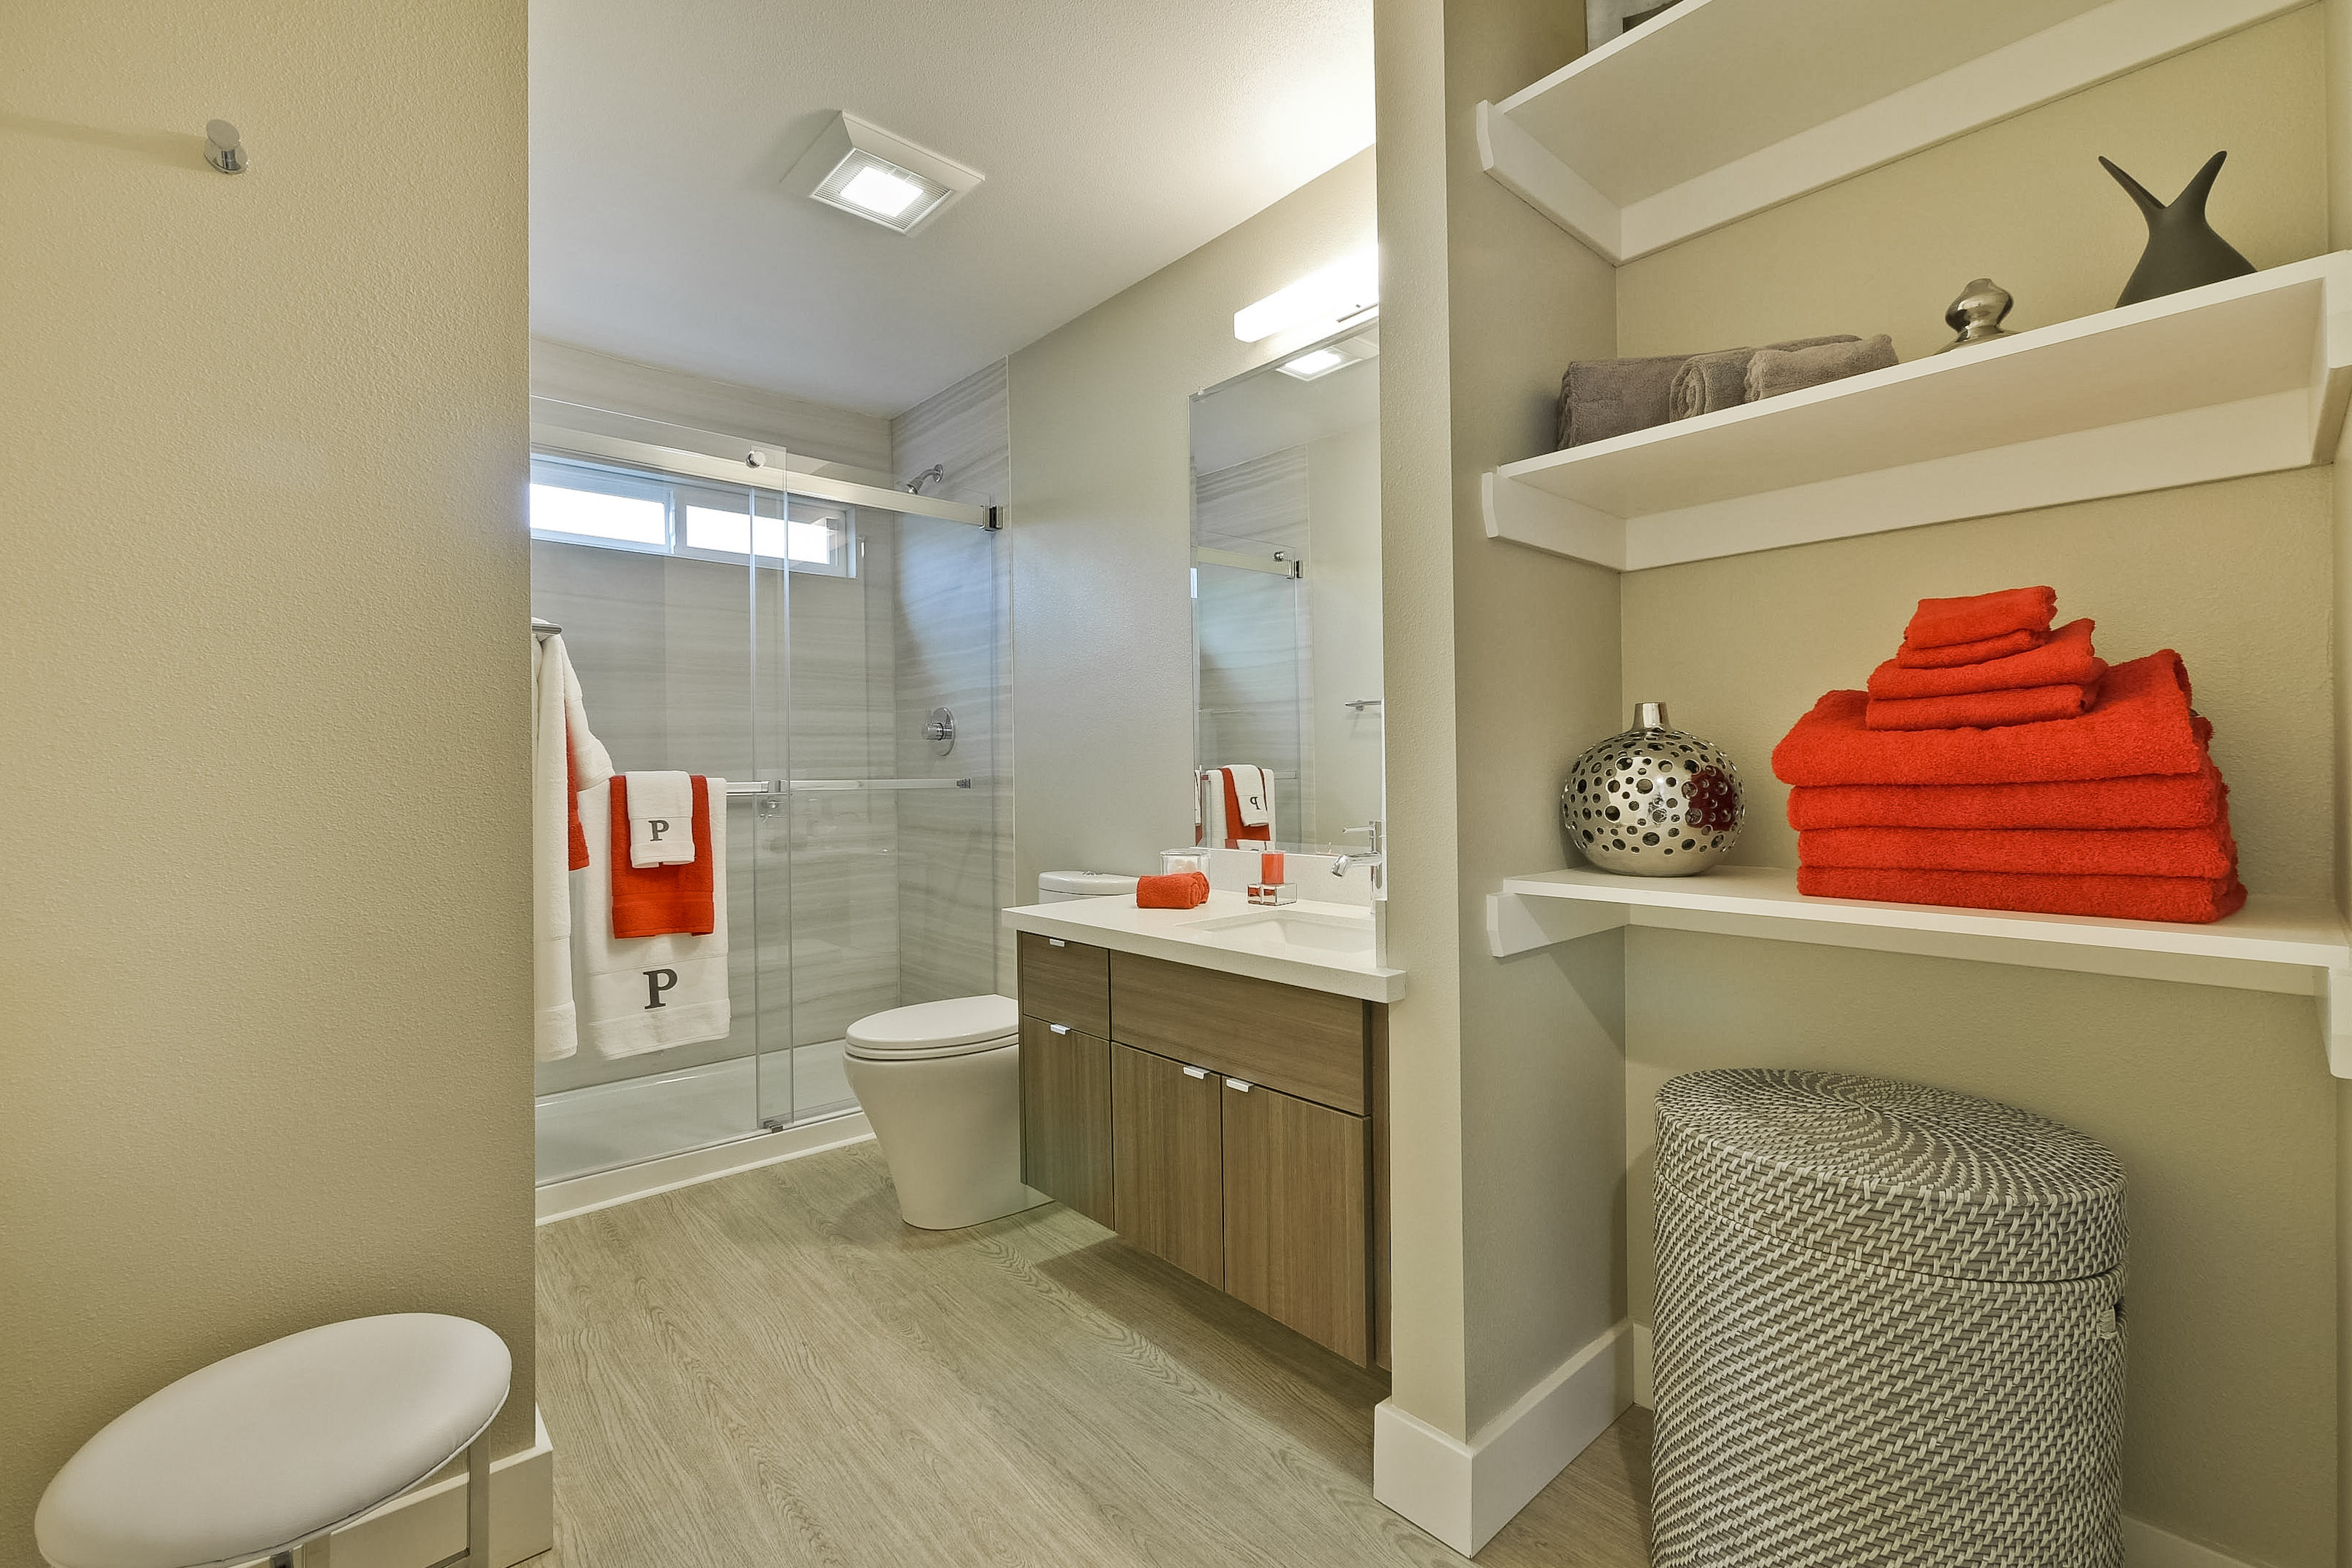 Bathroom      1 - Copy.jpg